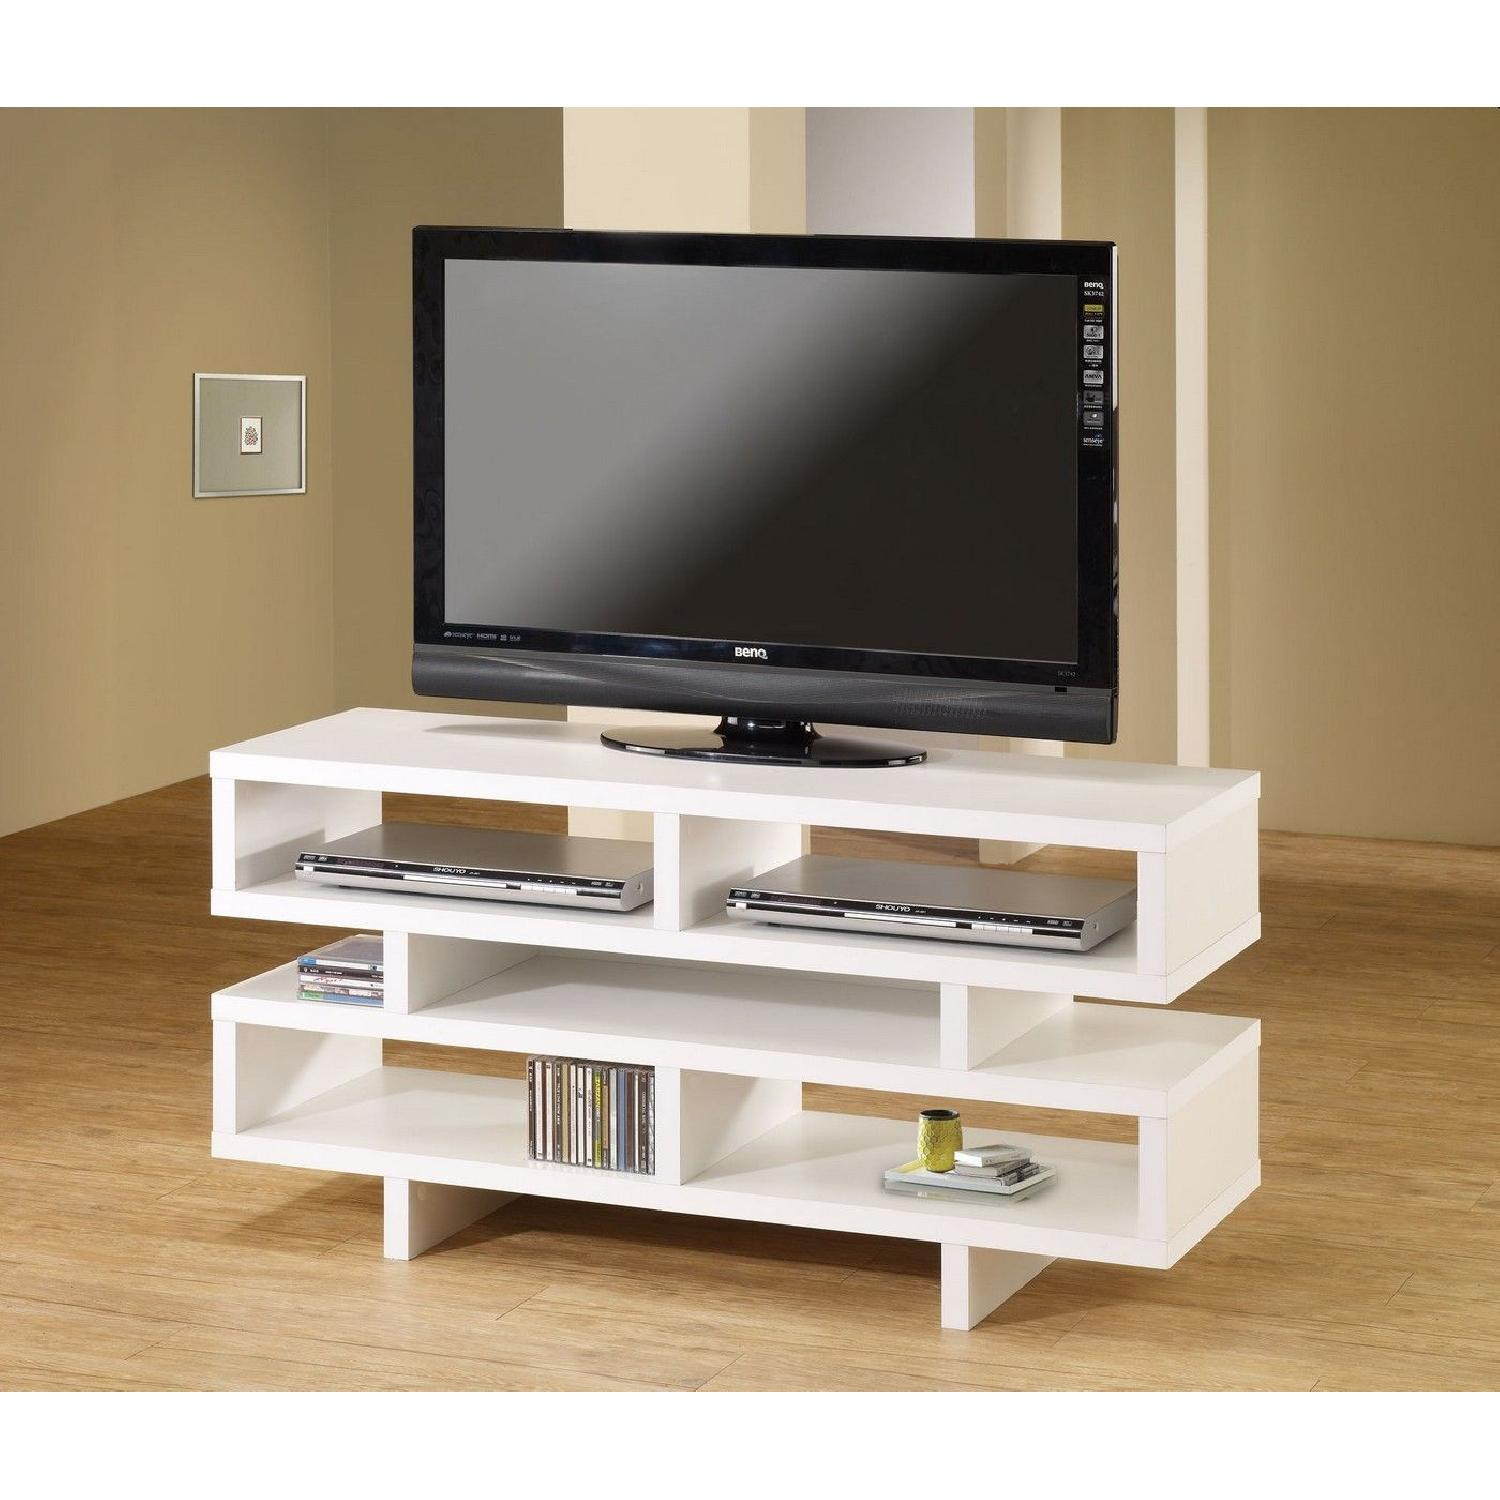 Modern TV Console in White Finish w/ Open Shelf Design - image-2